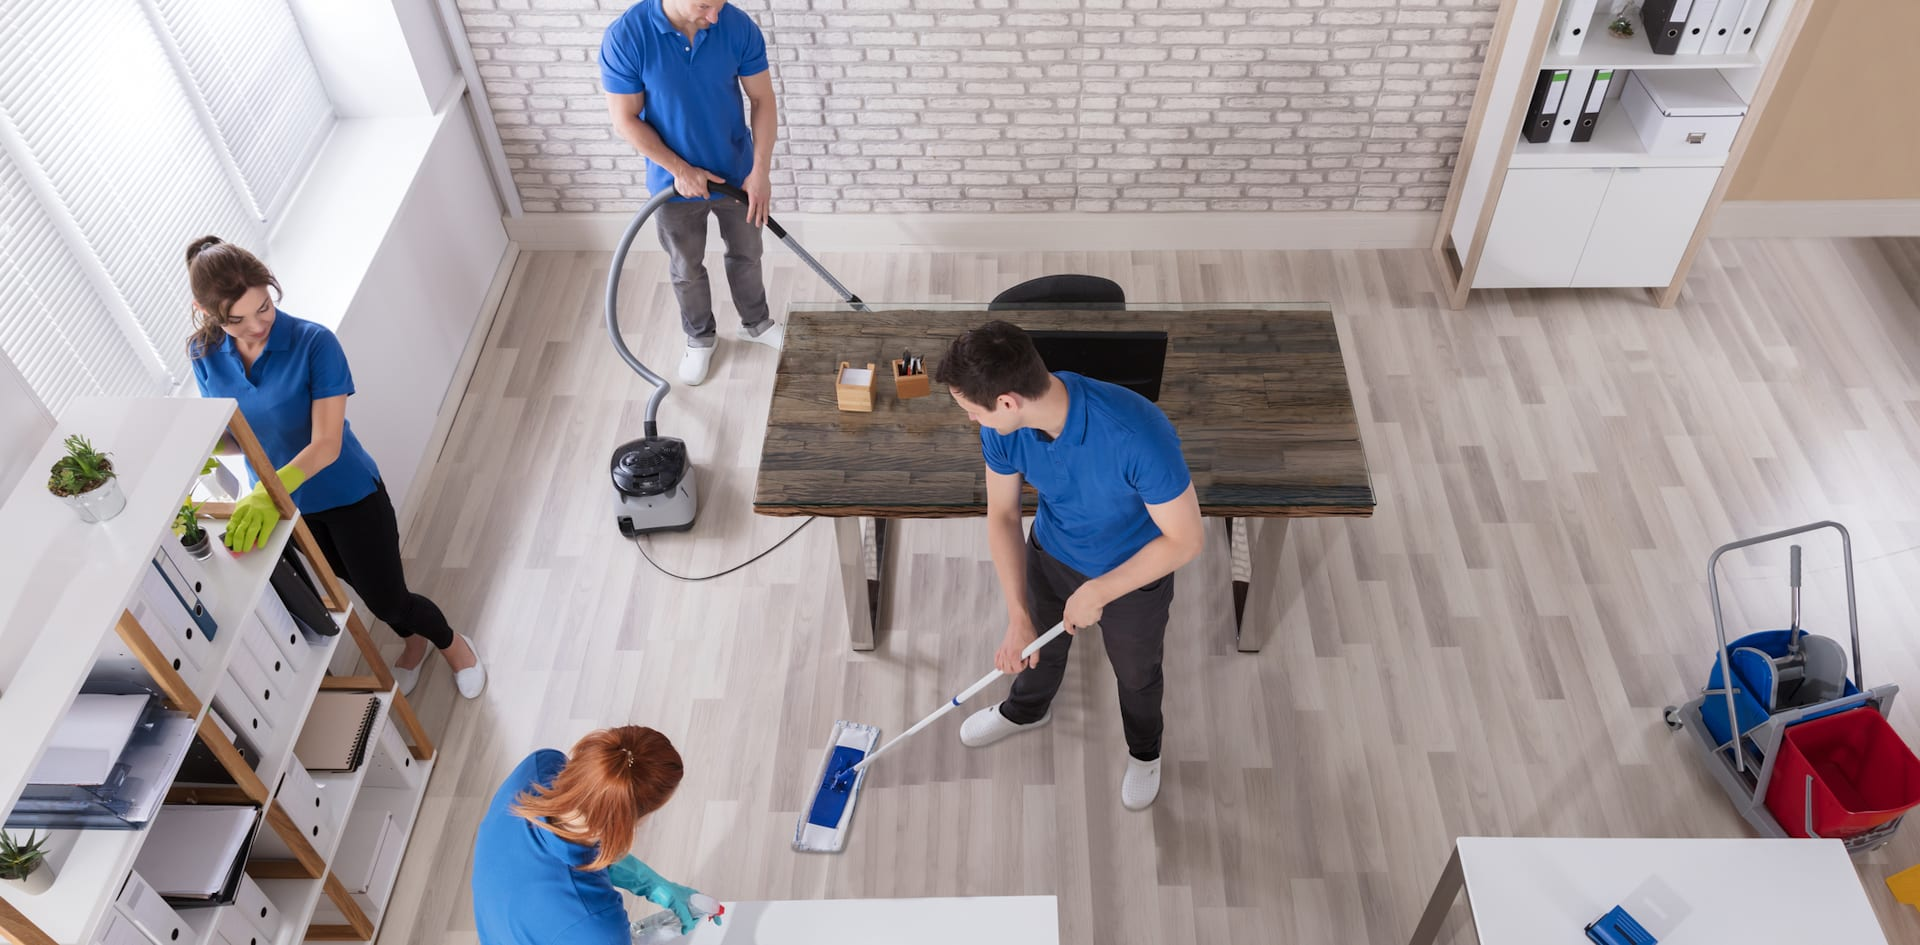 Cleaners using Cleaning Equipment